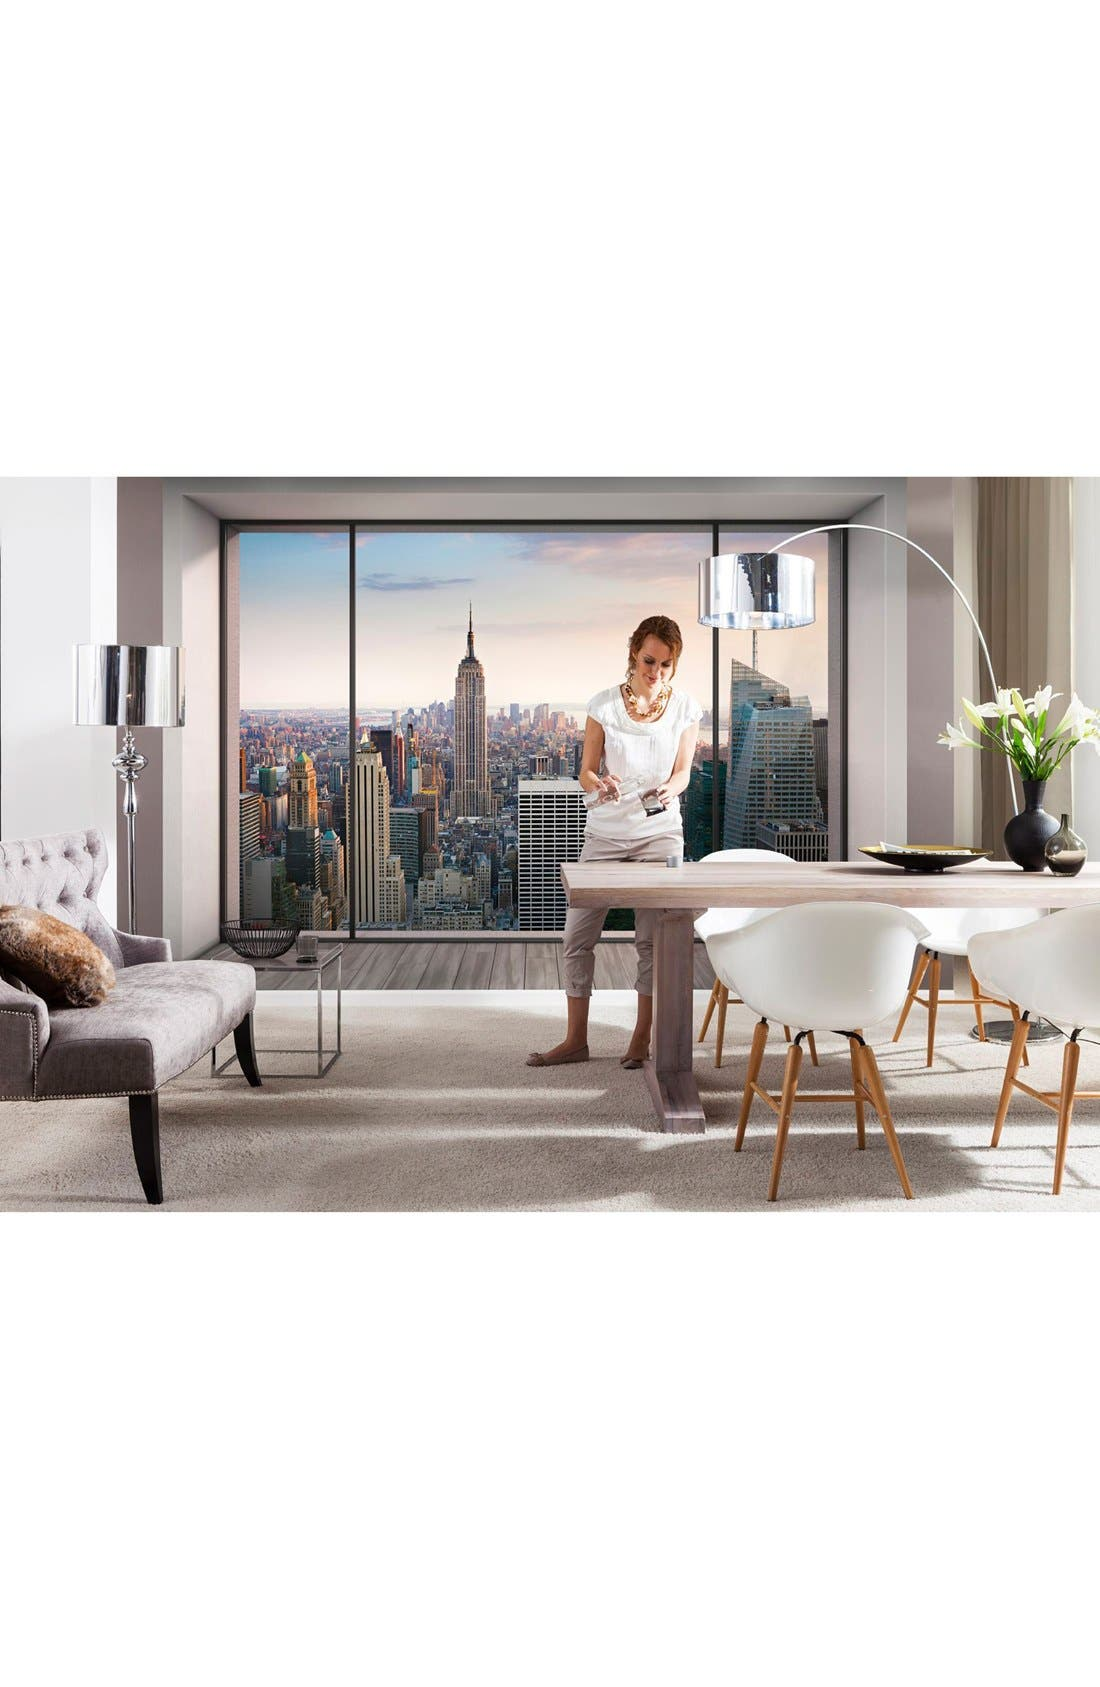 Alternate Image 1 Selected - Wallpops 'Penthouse' Wall Mural (8-Panel)